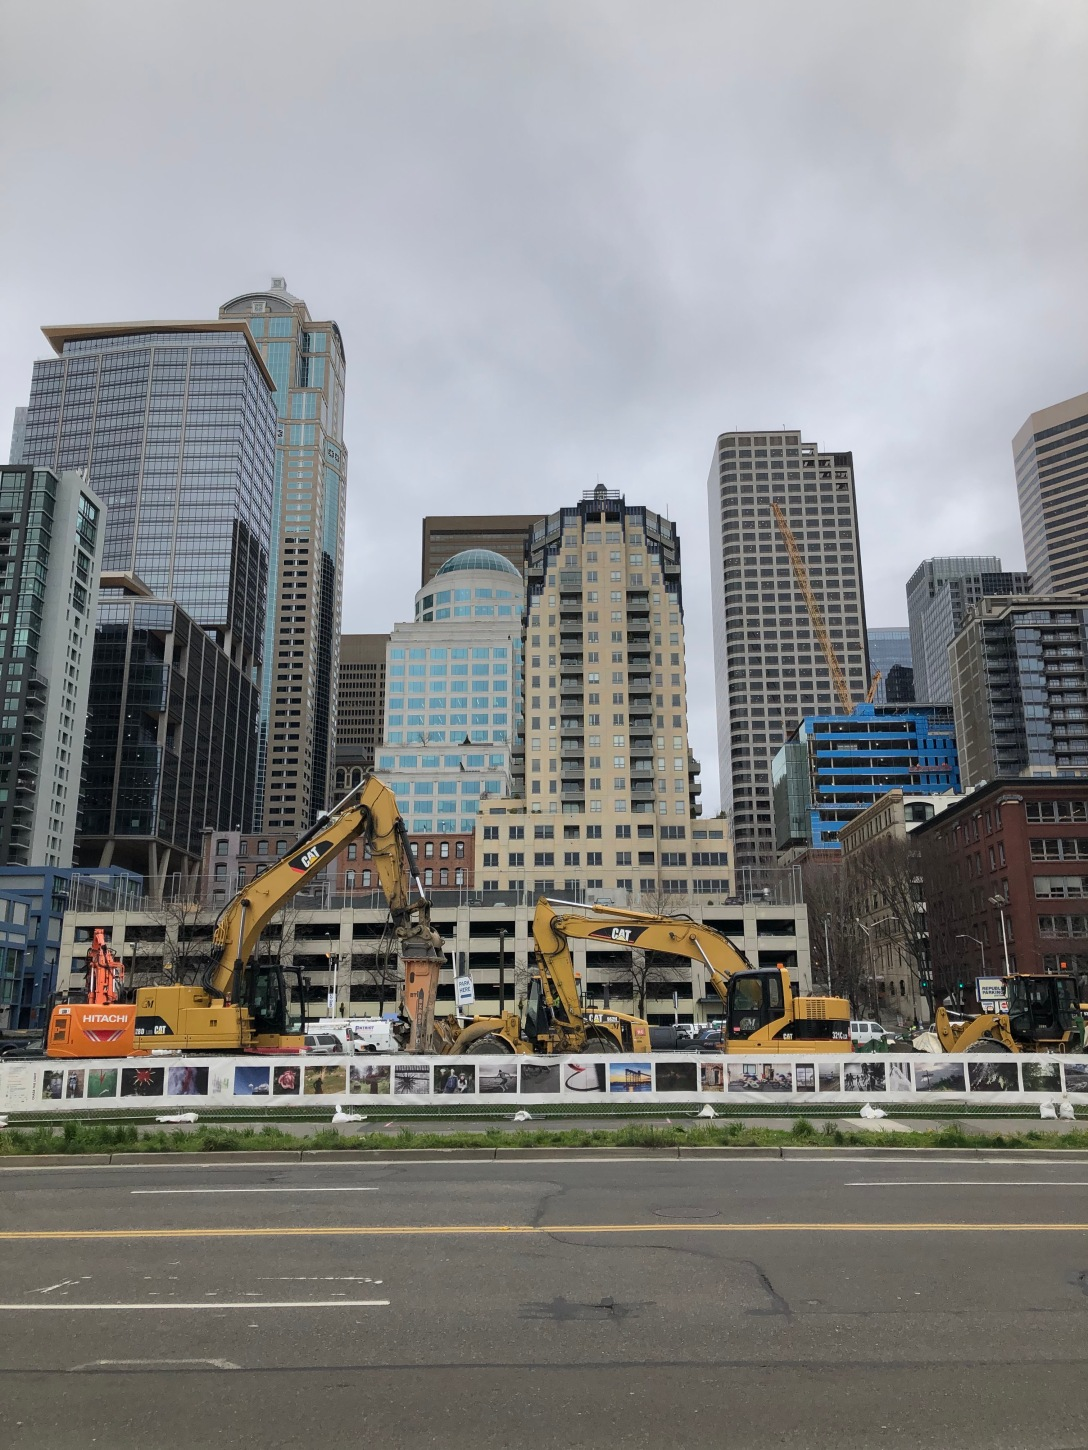 Many tall buildings behind construction equipment and a road